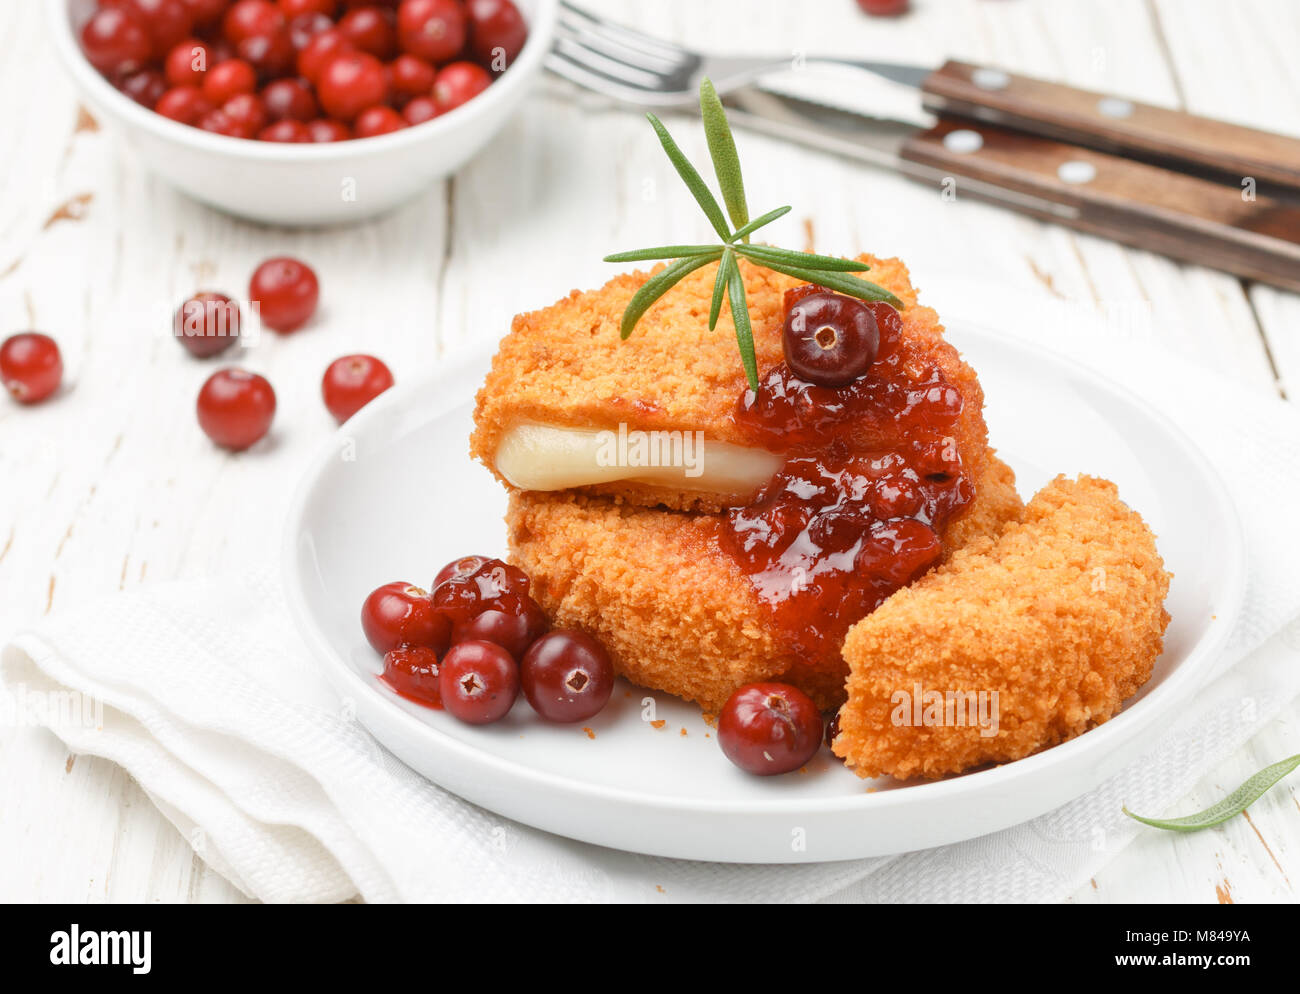 Baked Camembert (brie) with fresh berries and cranberry sauce with rosemary on a white plate. Gourmet appetizer. - Stock Image